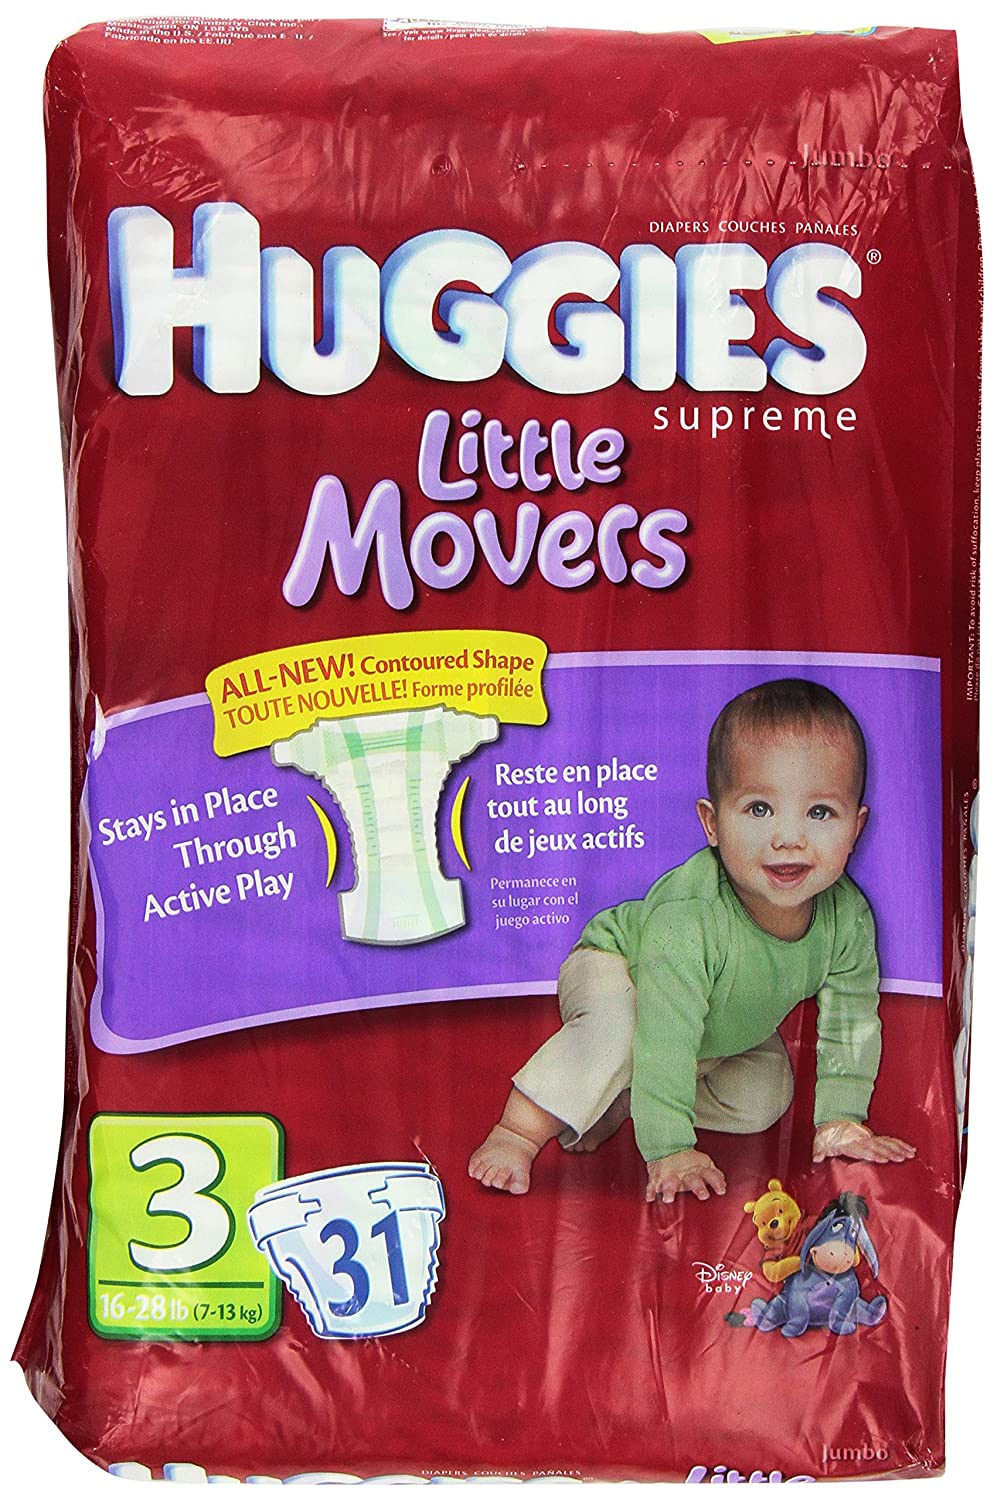 HUGGIES Supreme Little Movers Diapers, Jumbo Size 3, 16-28 lb 31-Count by Huggies: Amazon.es: Salud y cuidado personal